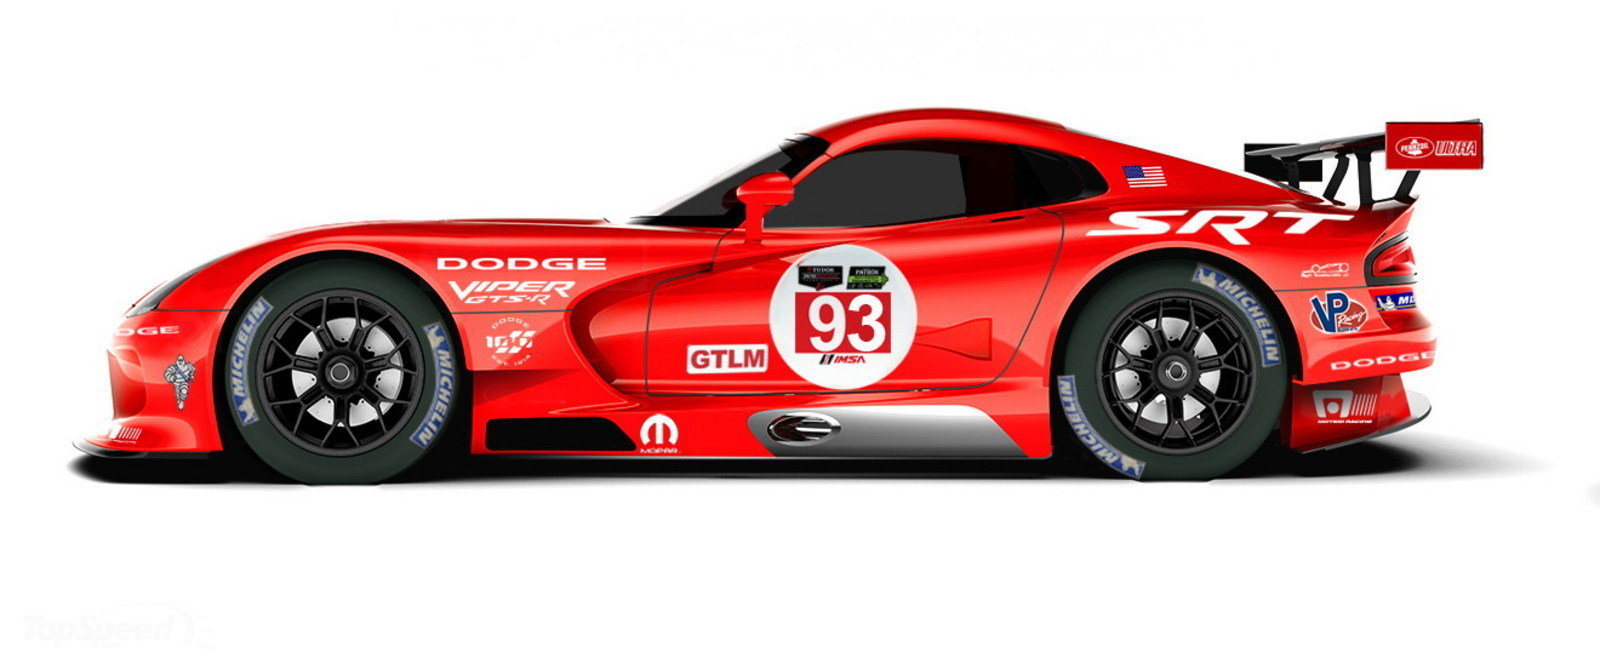 2014 Dodge Viper Srt Gts R Review Top Speed